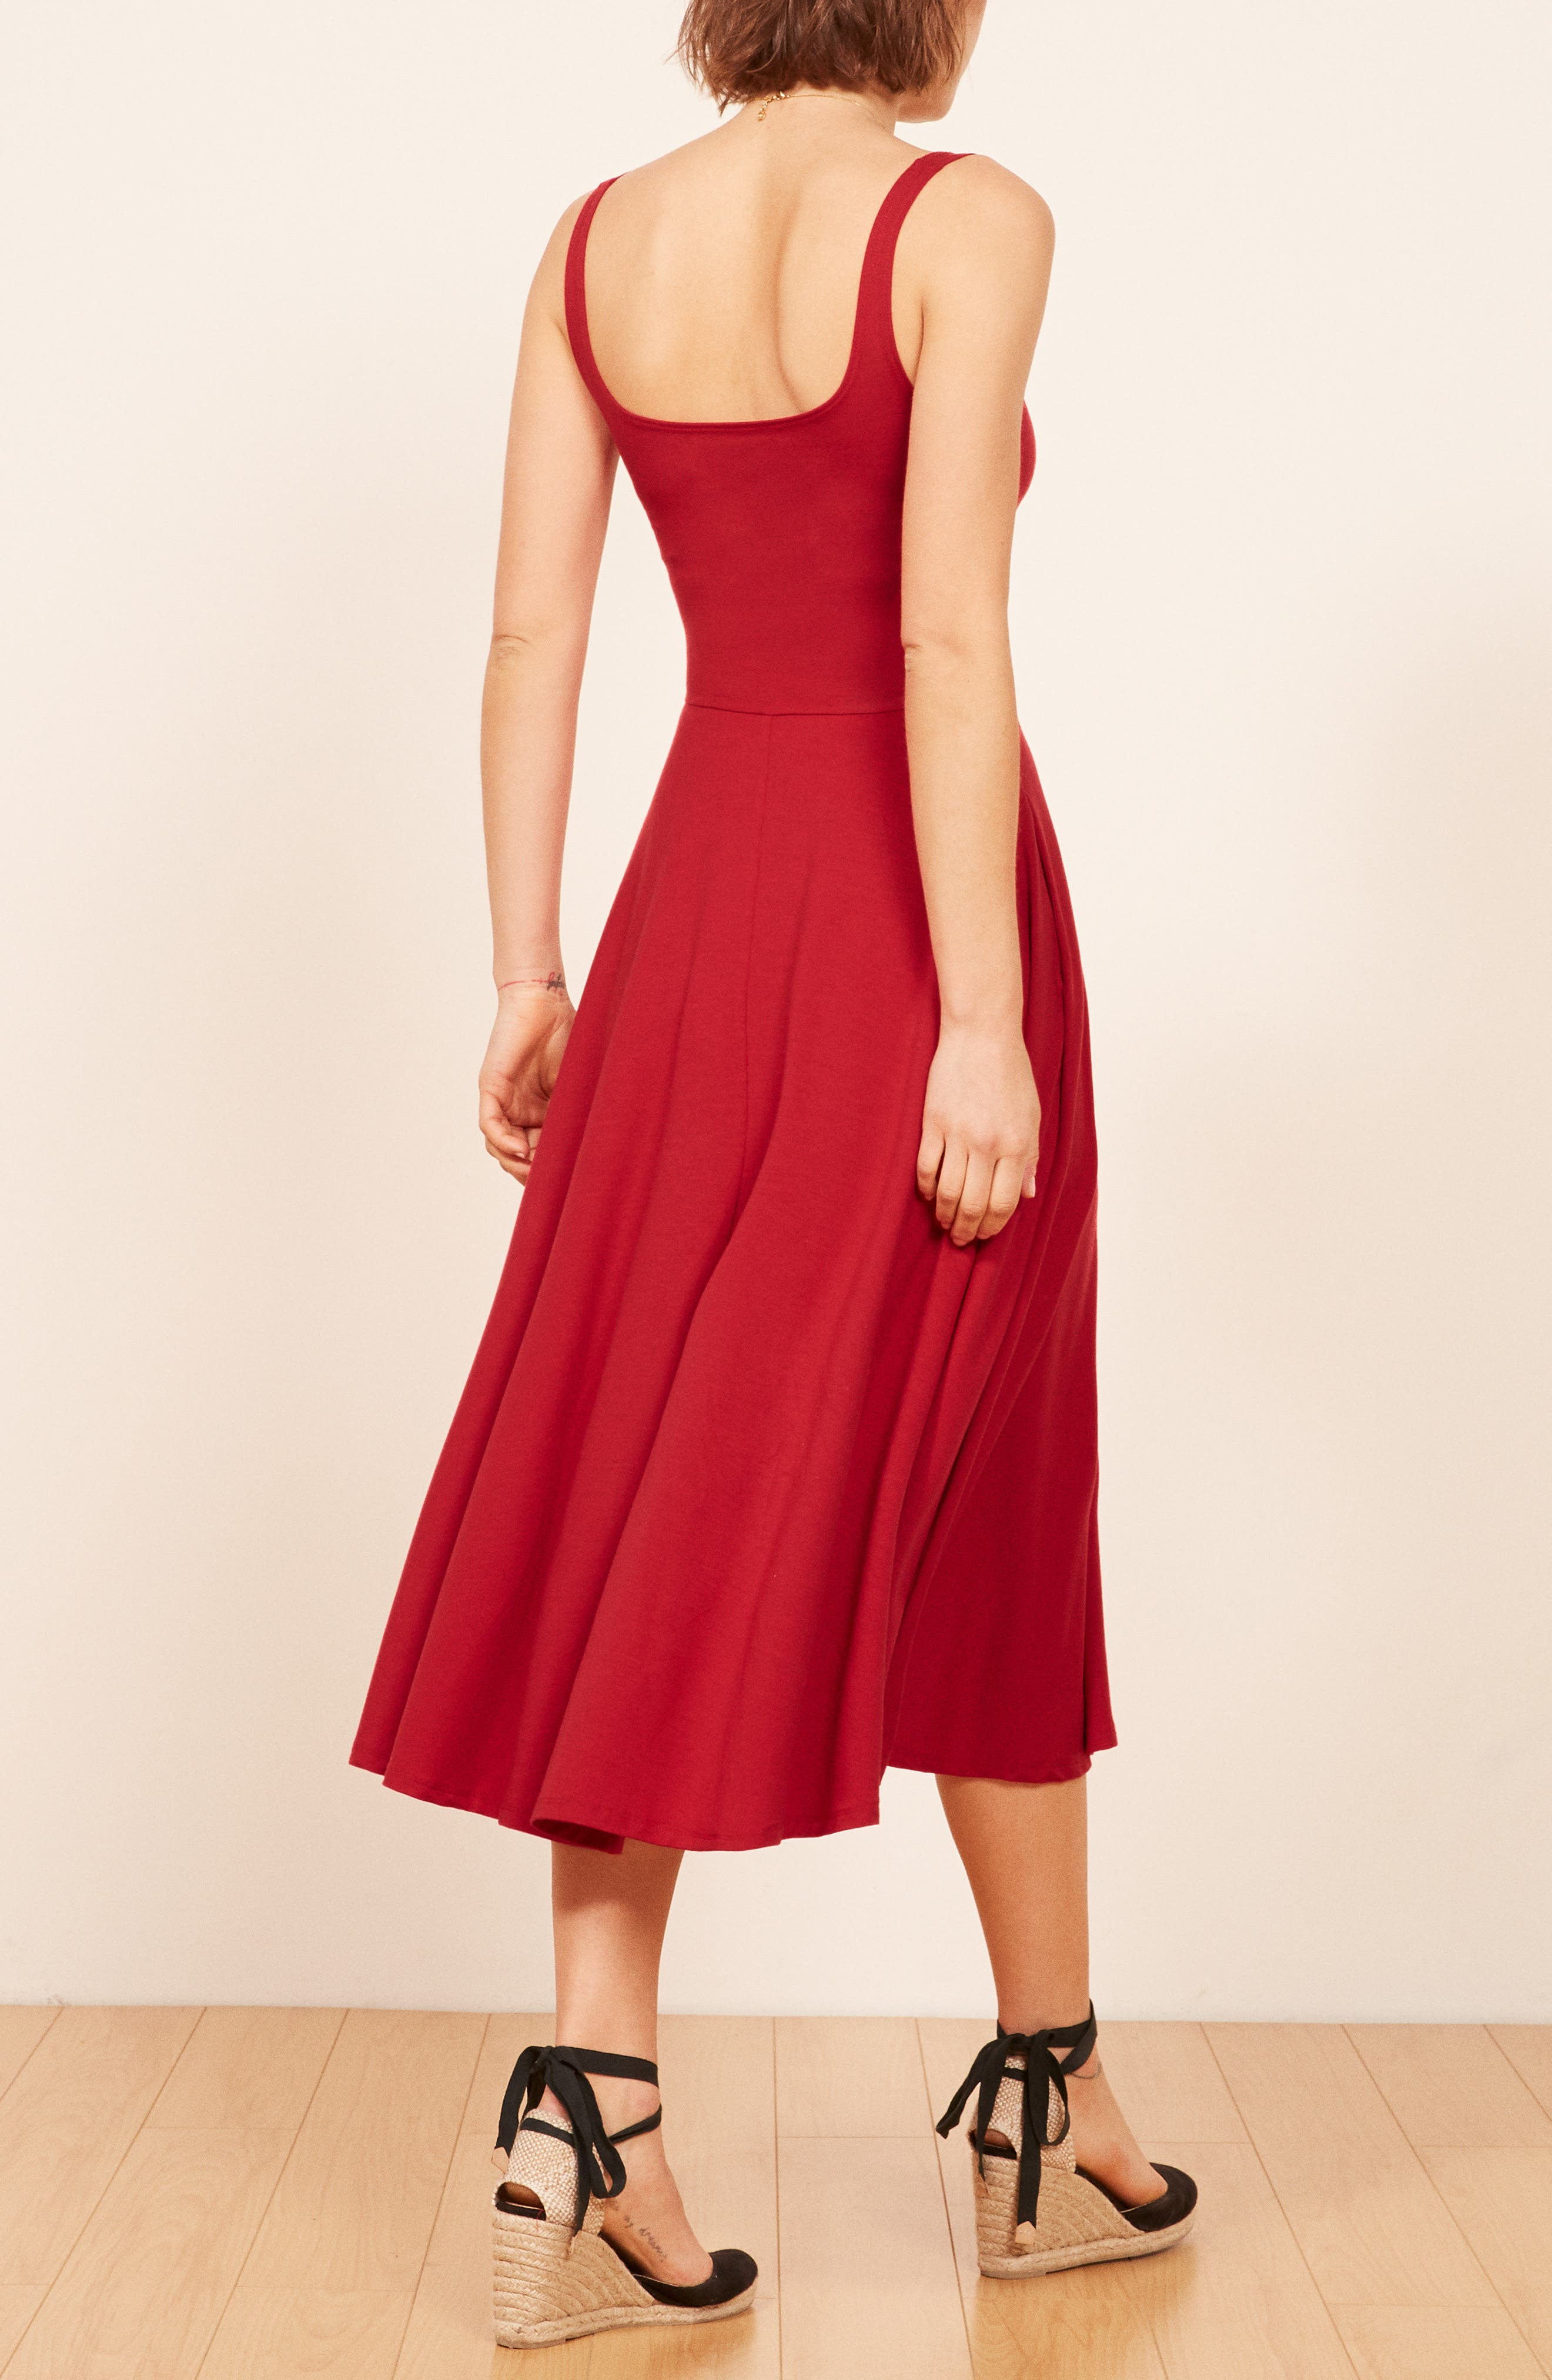 REFORMATION, Rou Midi Fit & Flare Dress, Alternate thumbnail 2, color, CHERRY